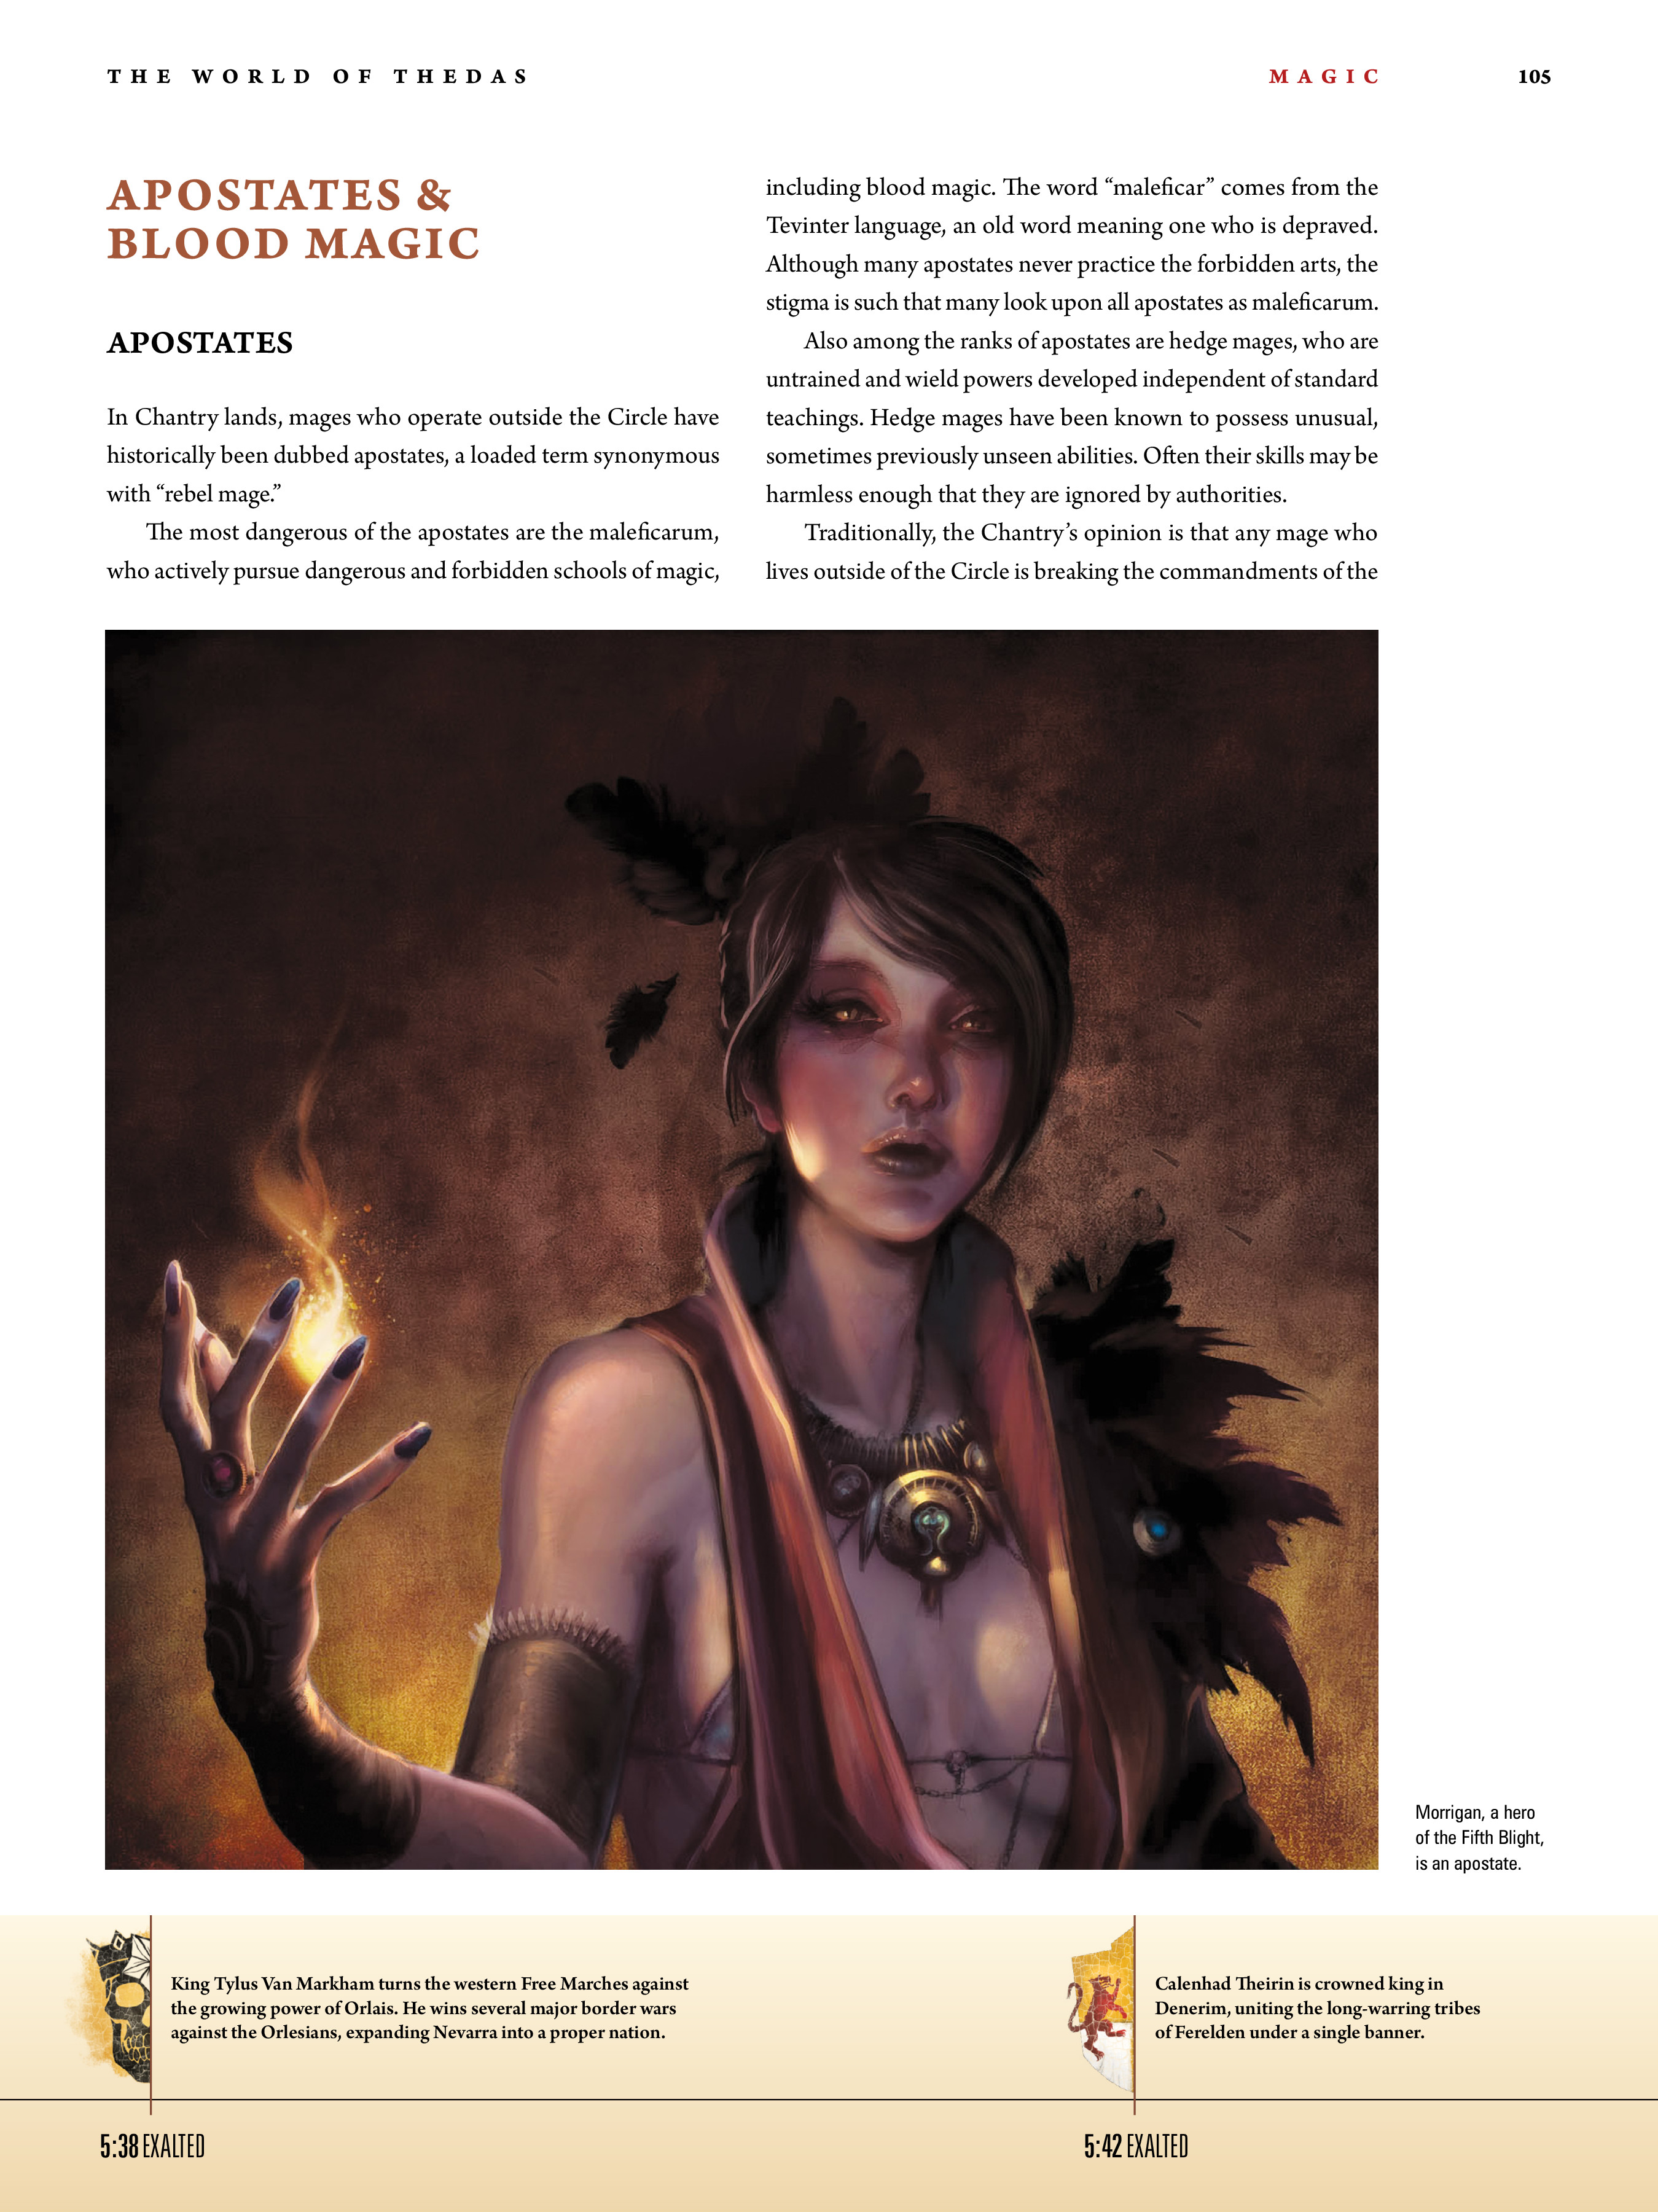 Read online Dragon Age: The World of Thedas comic -  Issue # TPB 1 - 85